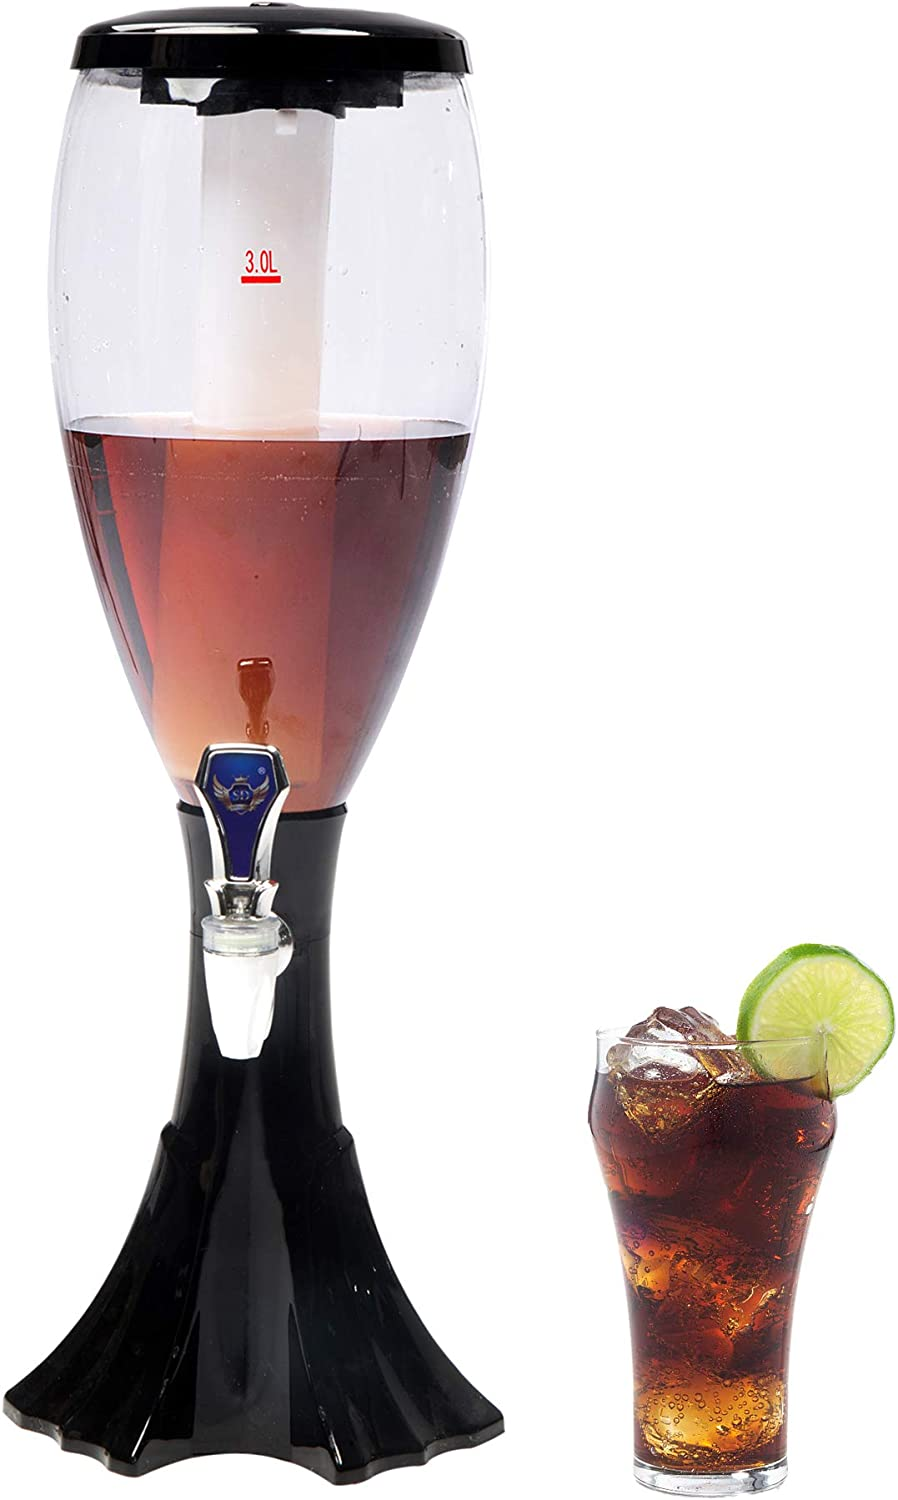 LUCKYERMORE 1 Pc Beer Tower 4.5 Liters Drink Beverage Dispenser Plastic with Ice Tube Keep Cold for Birthday Party Bar